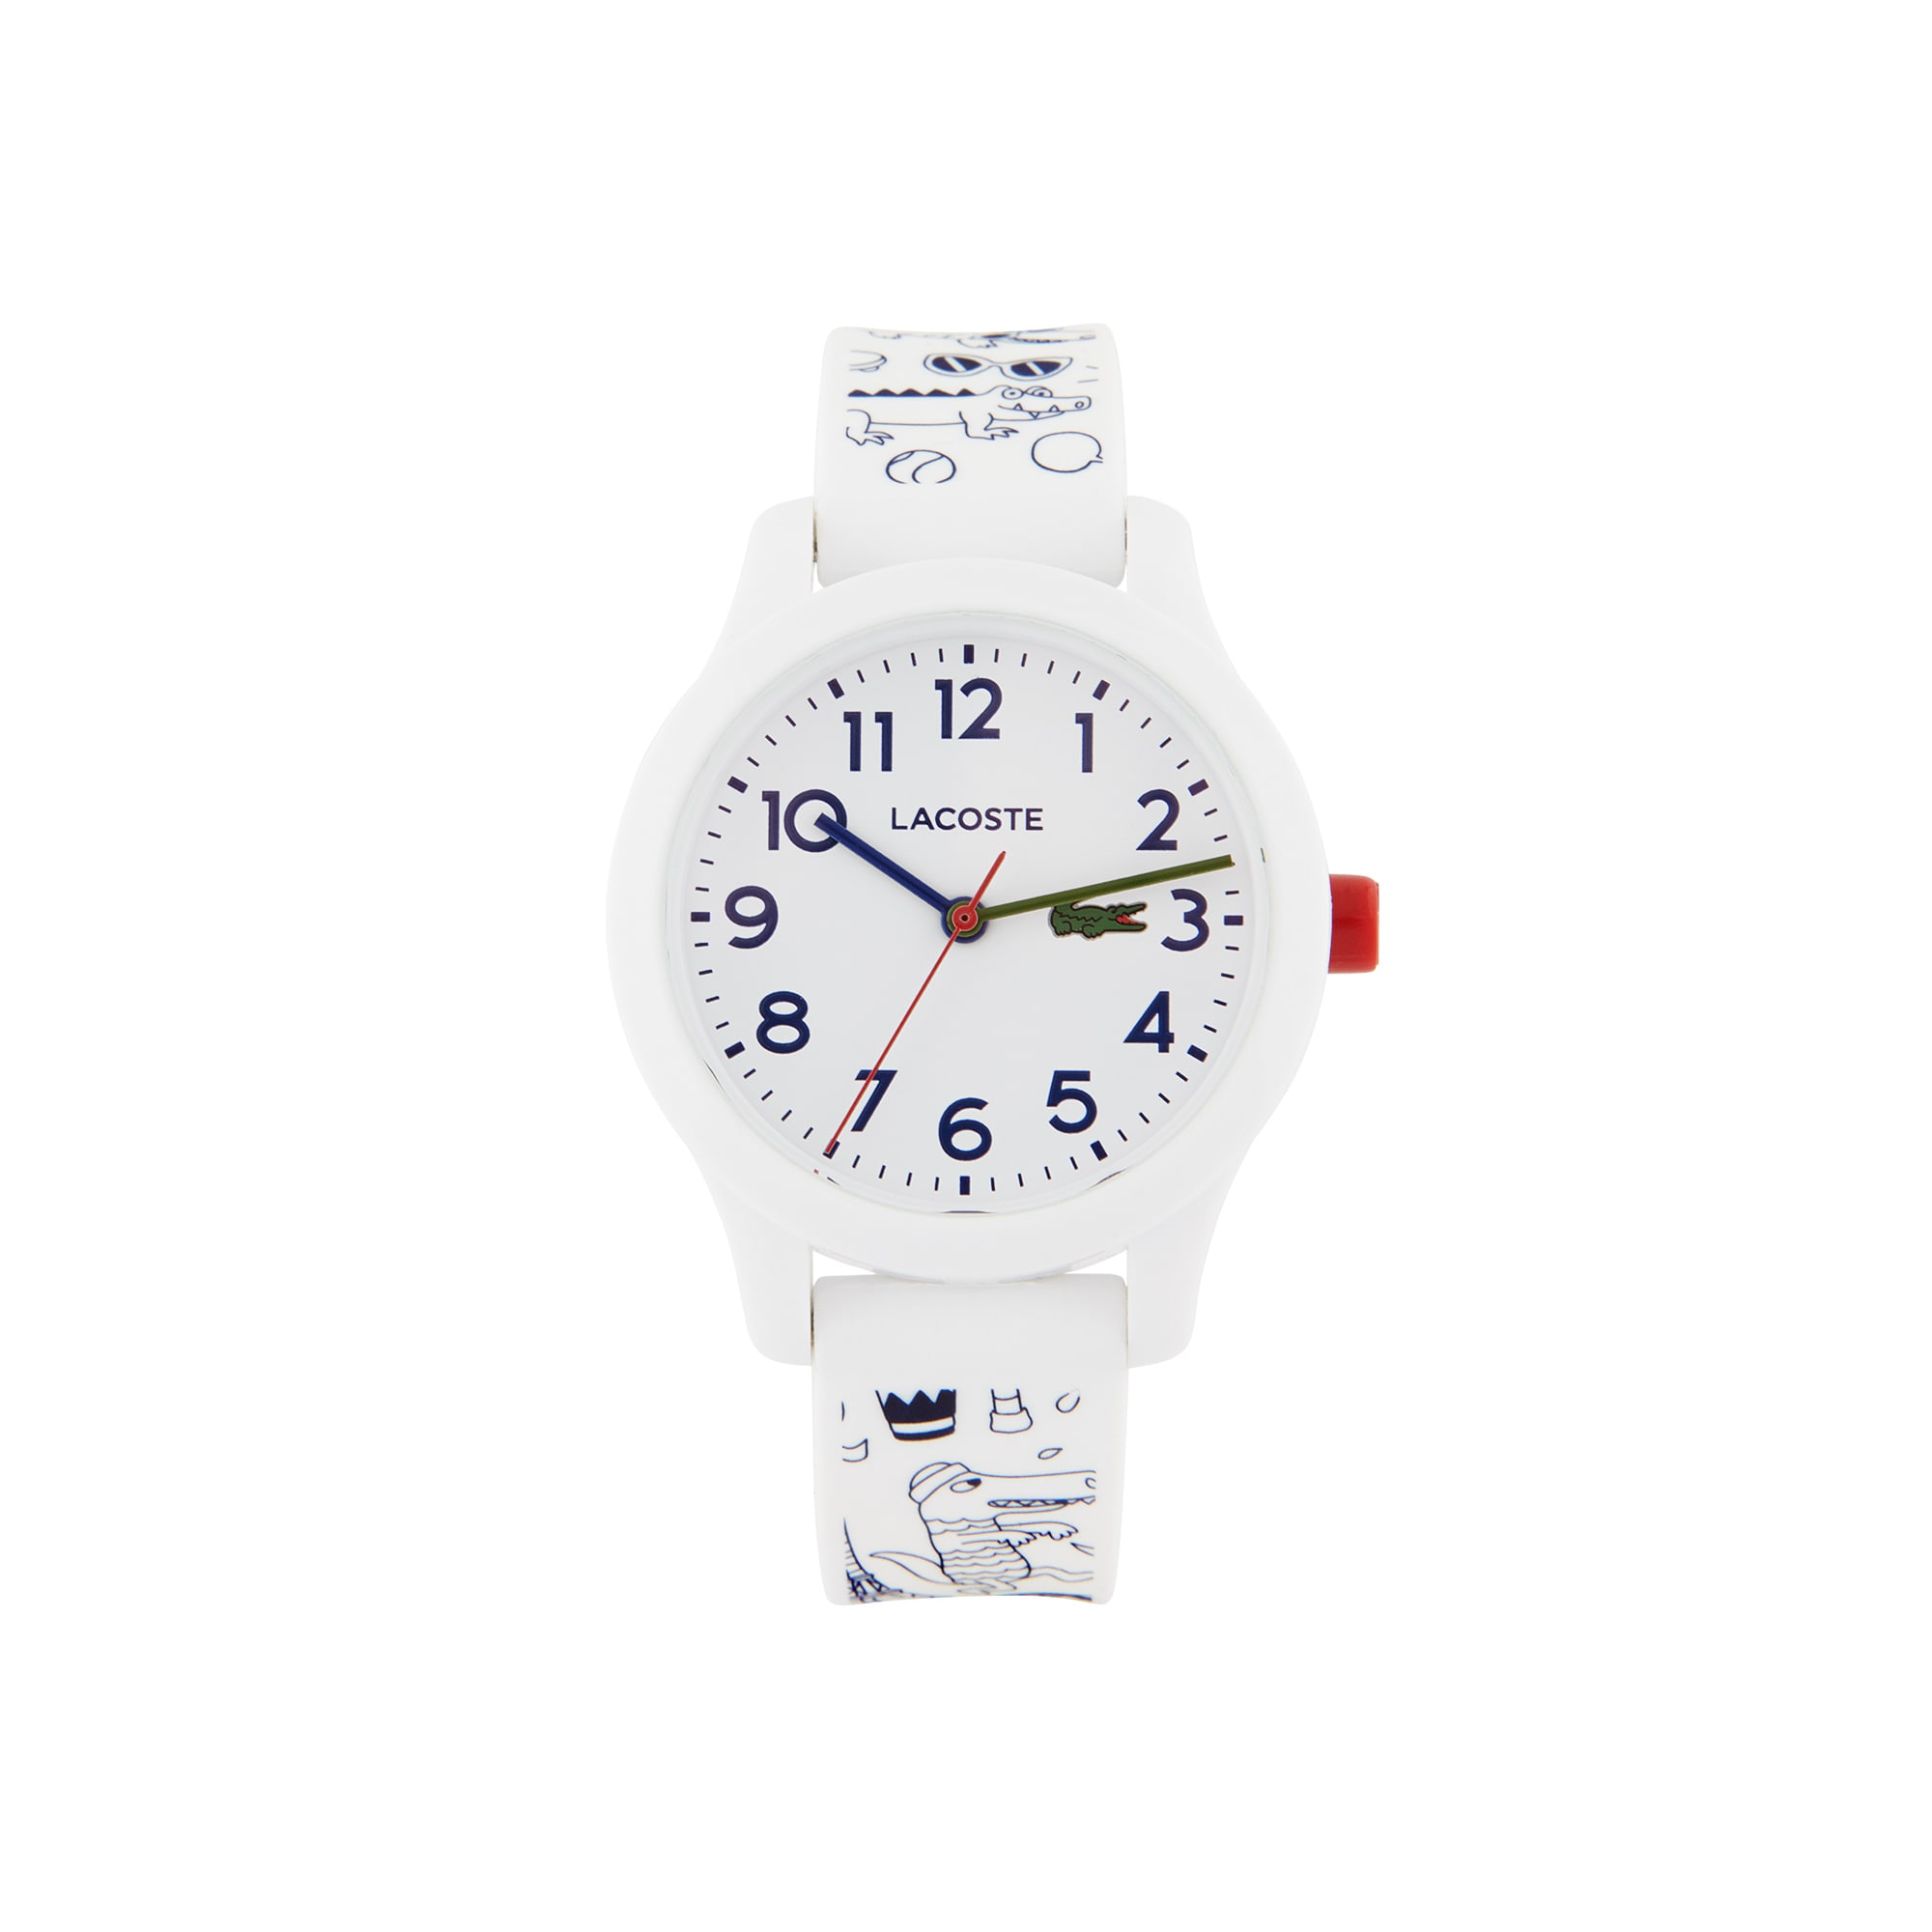 Child's Lacoste 12.12 OMY Limited Edition with White Silicone Strap